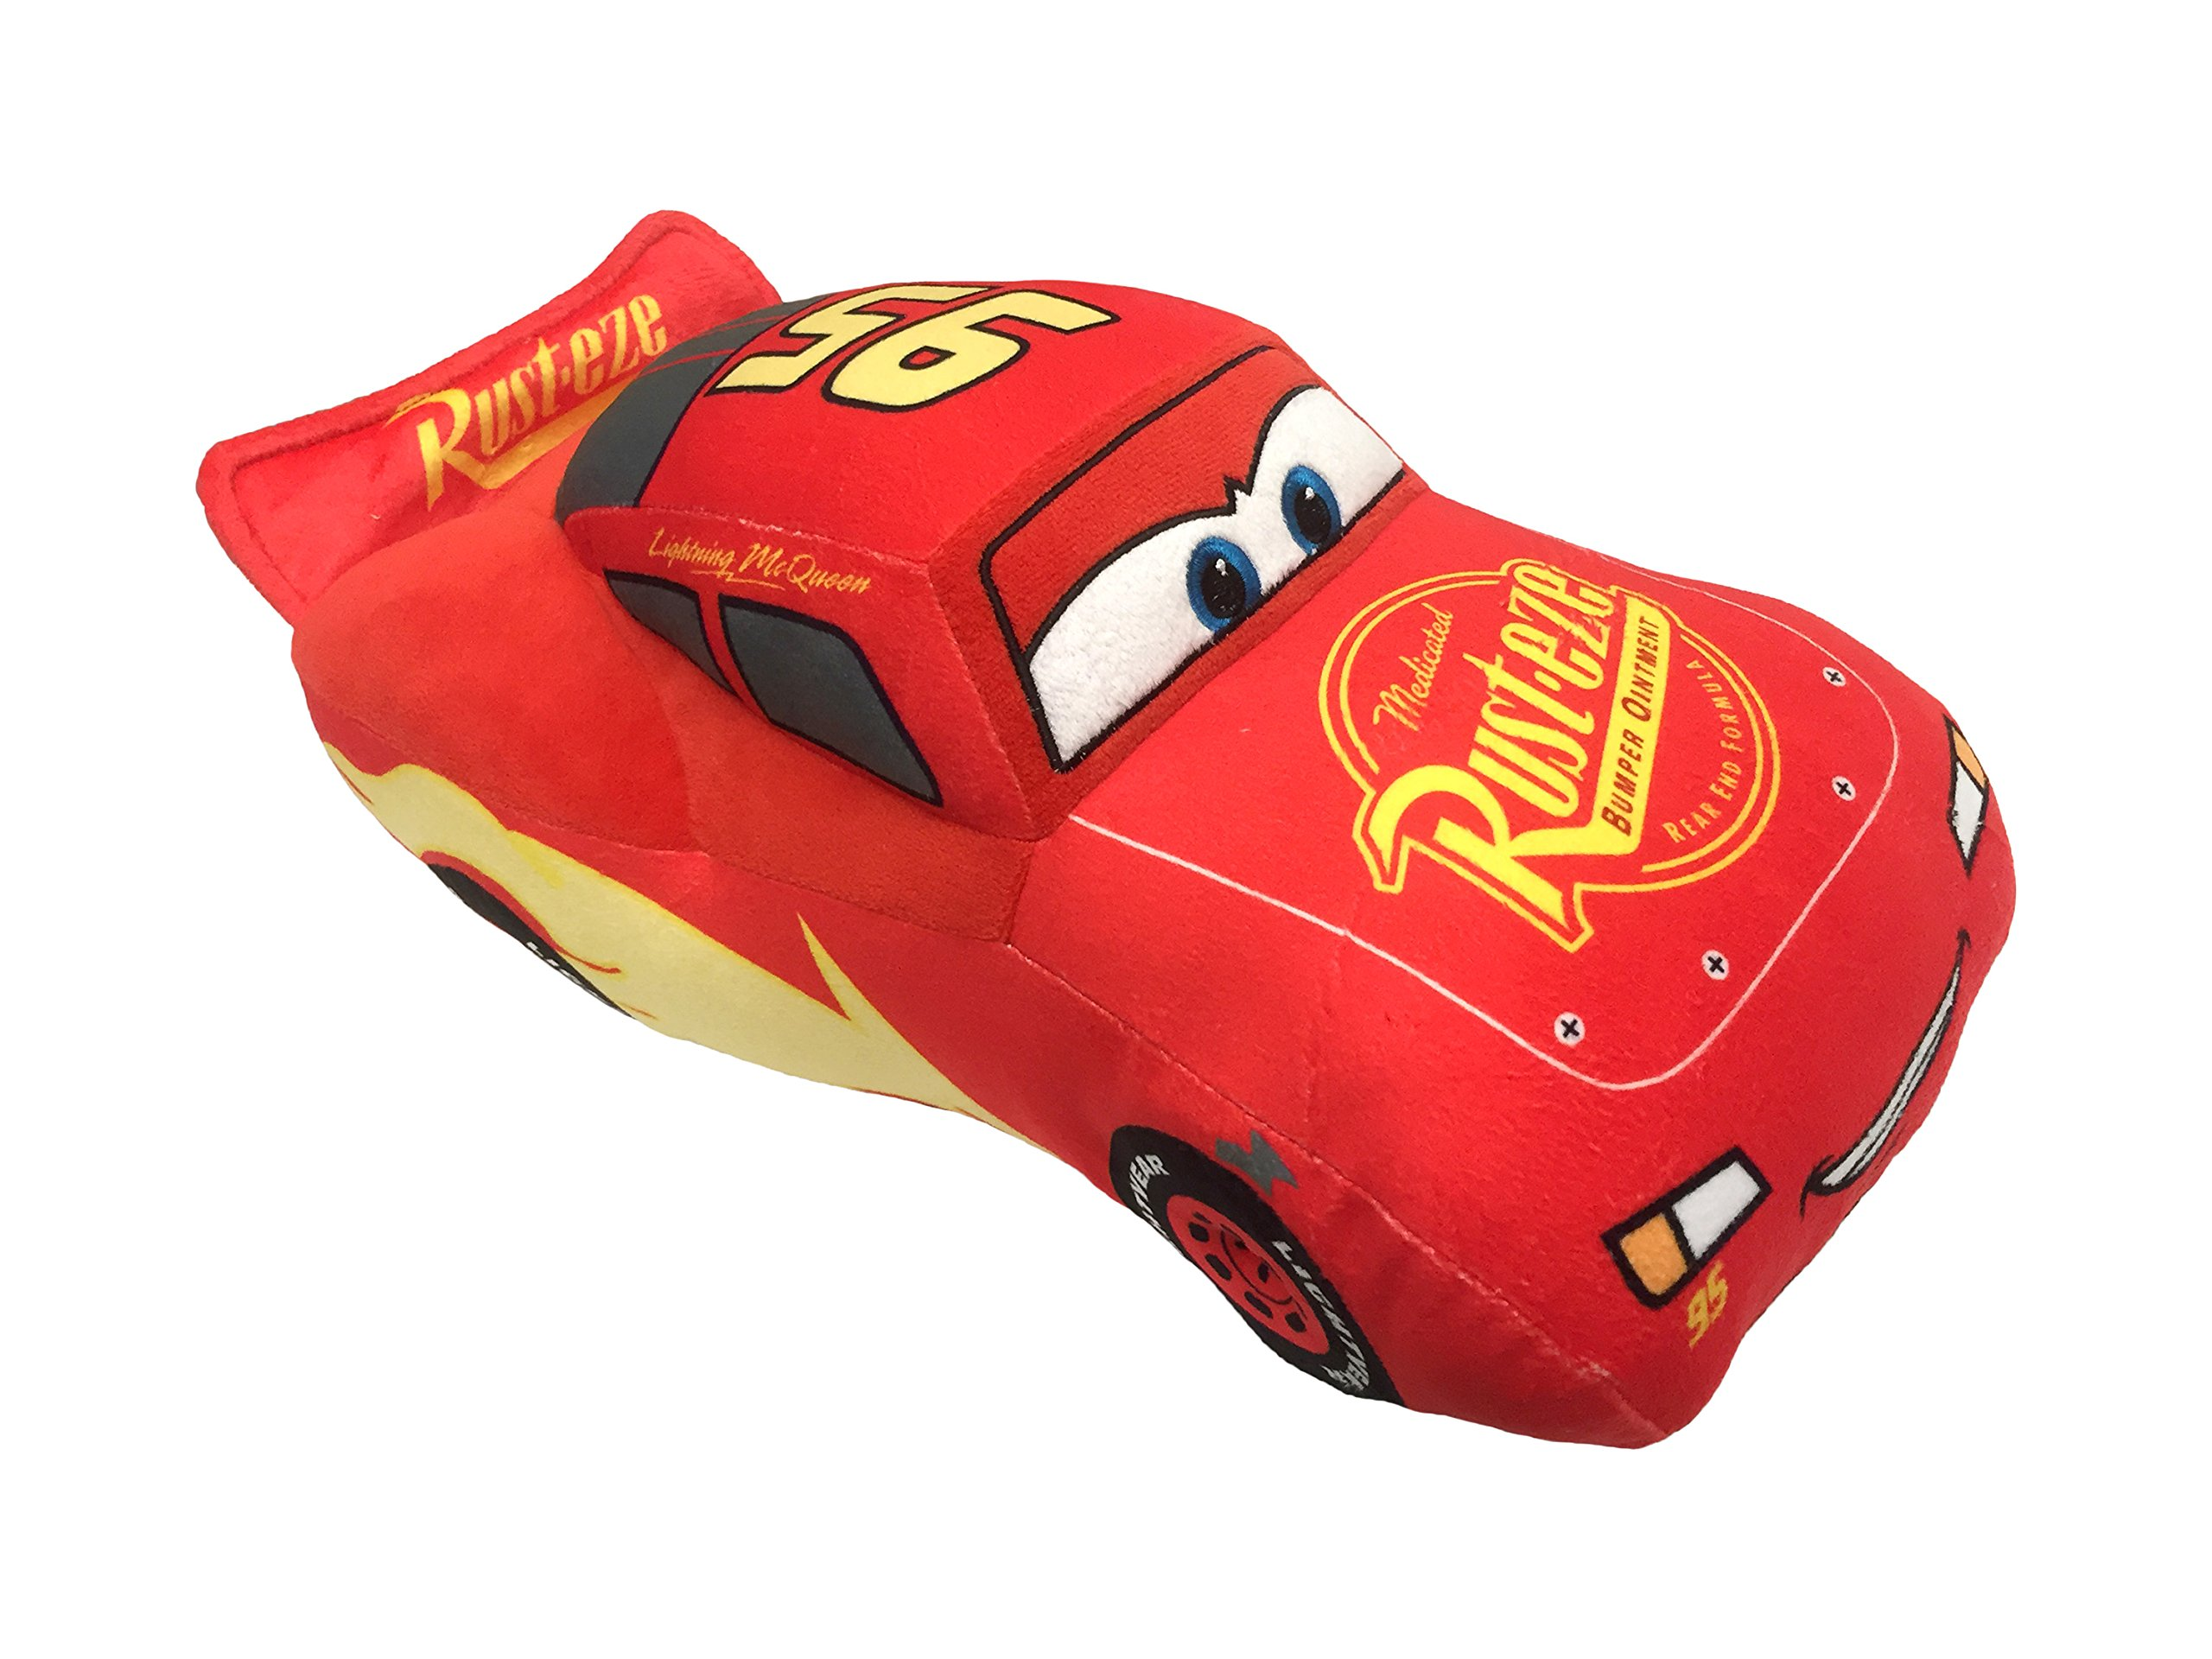 Disney Pixar Cars 3 Plush Stuffed Lightning Mcqueen Red Pillow Buddy - Kids Super Soft Polyester Microfiber, 17 inch (Official Pixar Product)